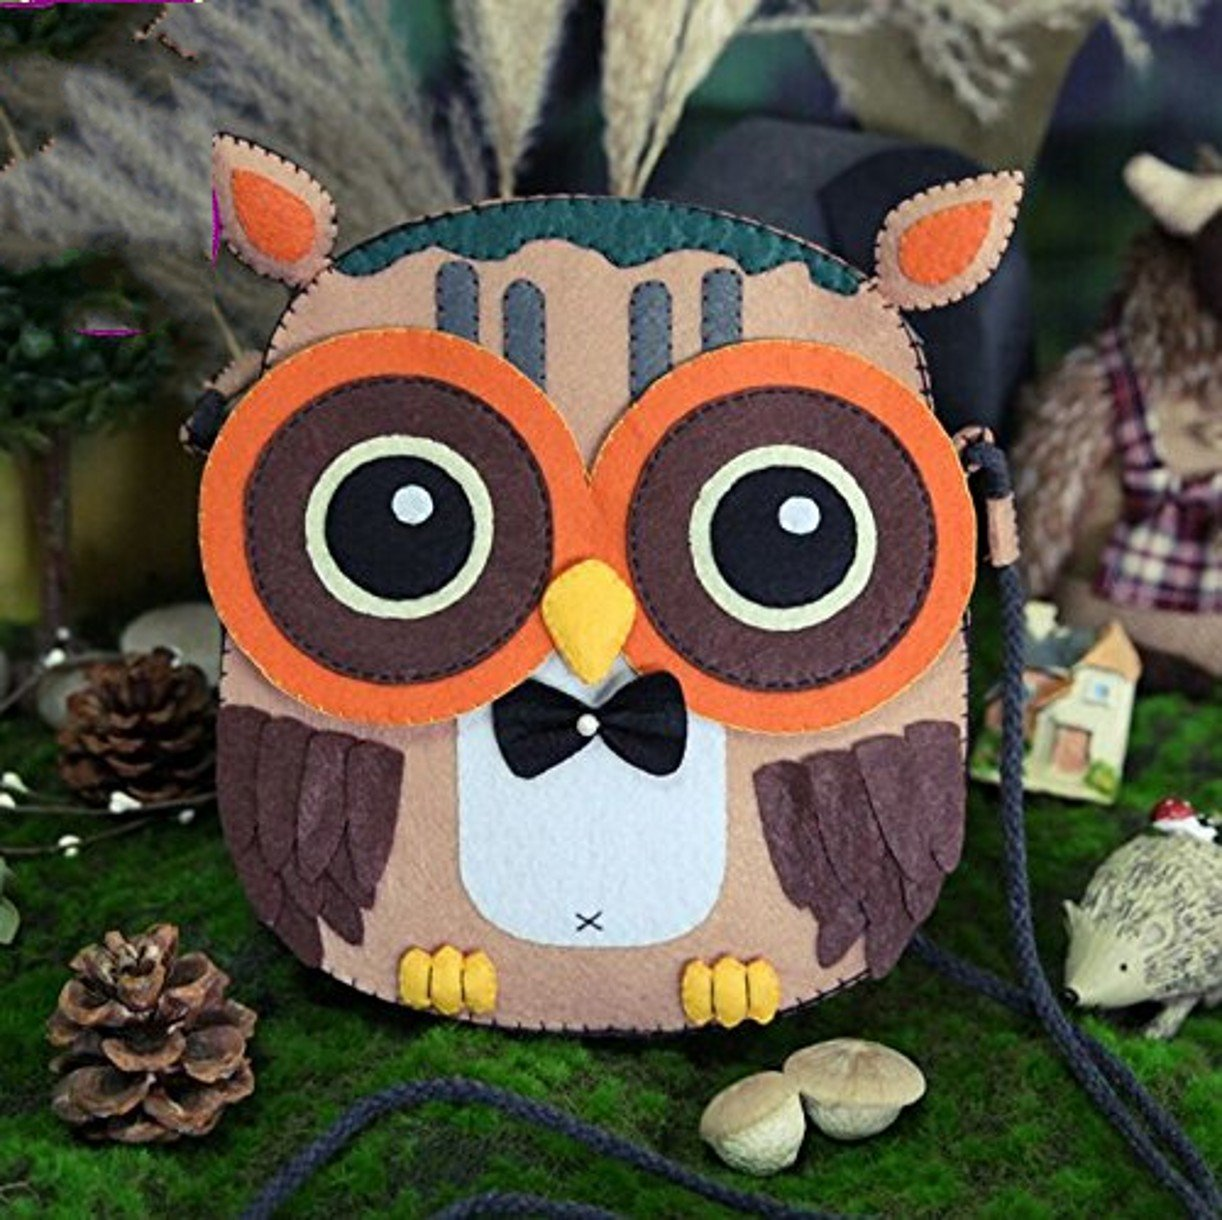 DIY Sewing Polyester Felt Nonwoven Fabric Craft Kit Doll Kits : Make Your Own owl satchel bag CYD